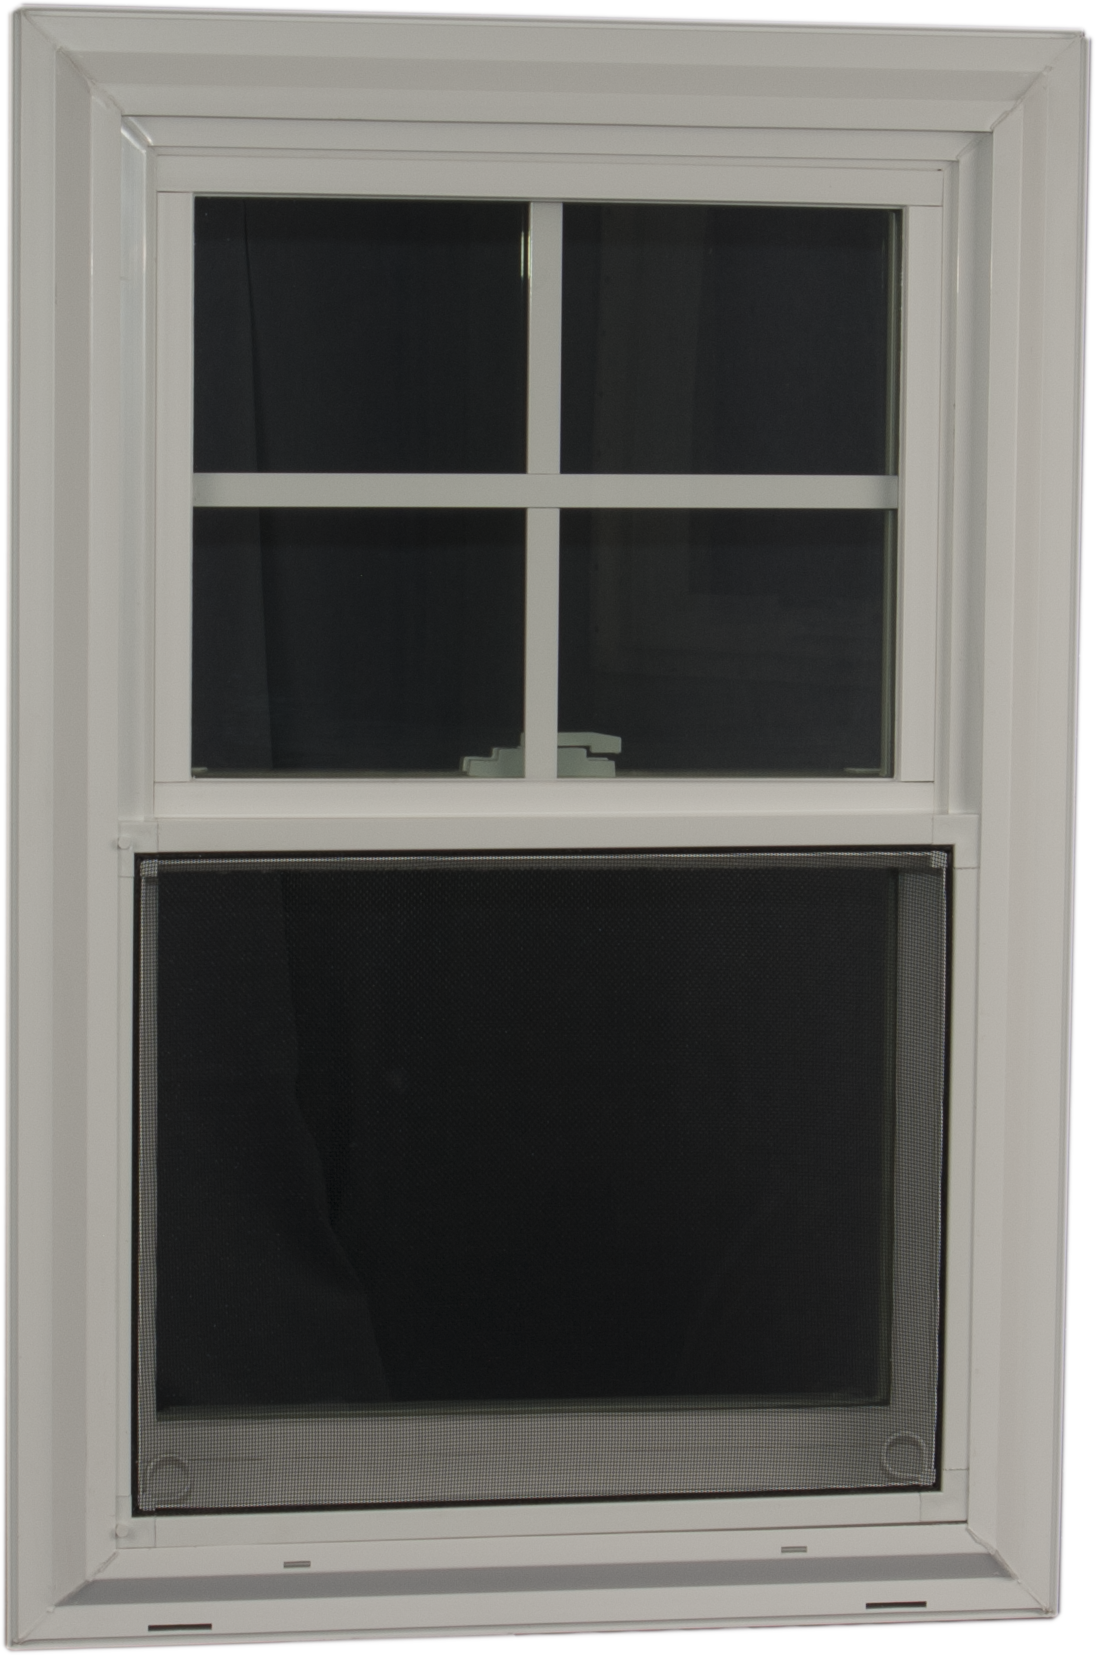 Double hung windows vinyl window manufacturer for Window manufacturers